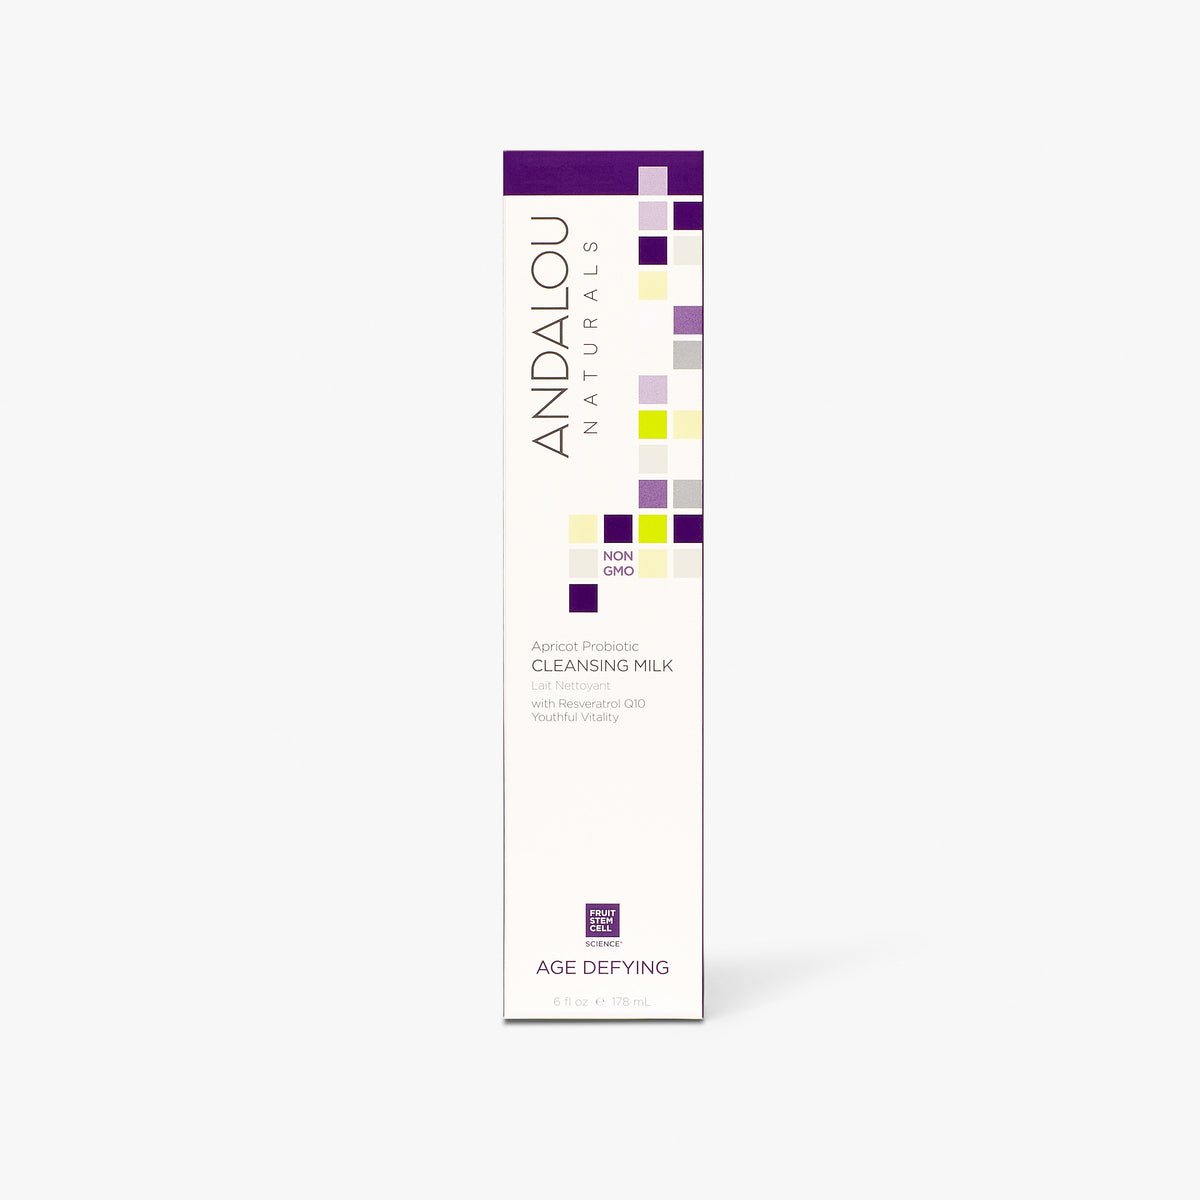 Andalou Naturals Age Defying Apricot Probiotic Cleansing Milk box